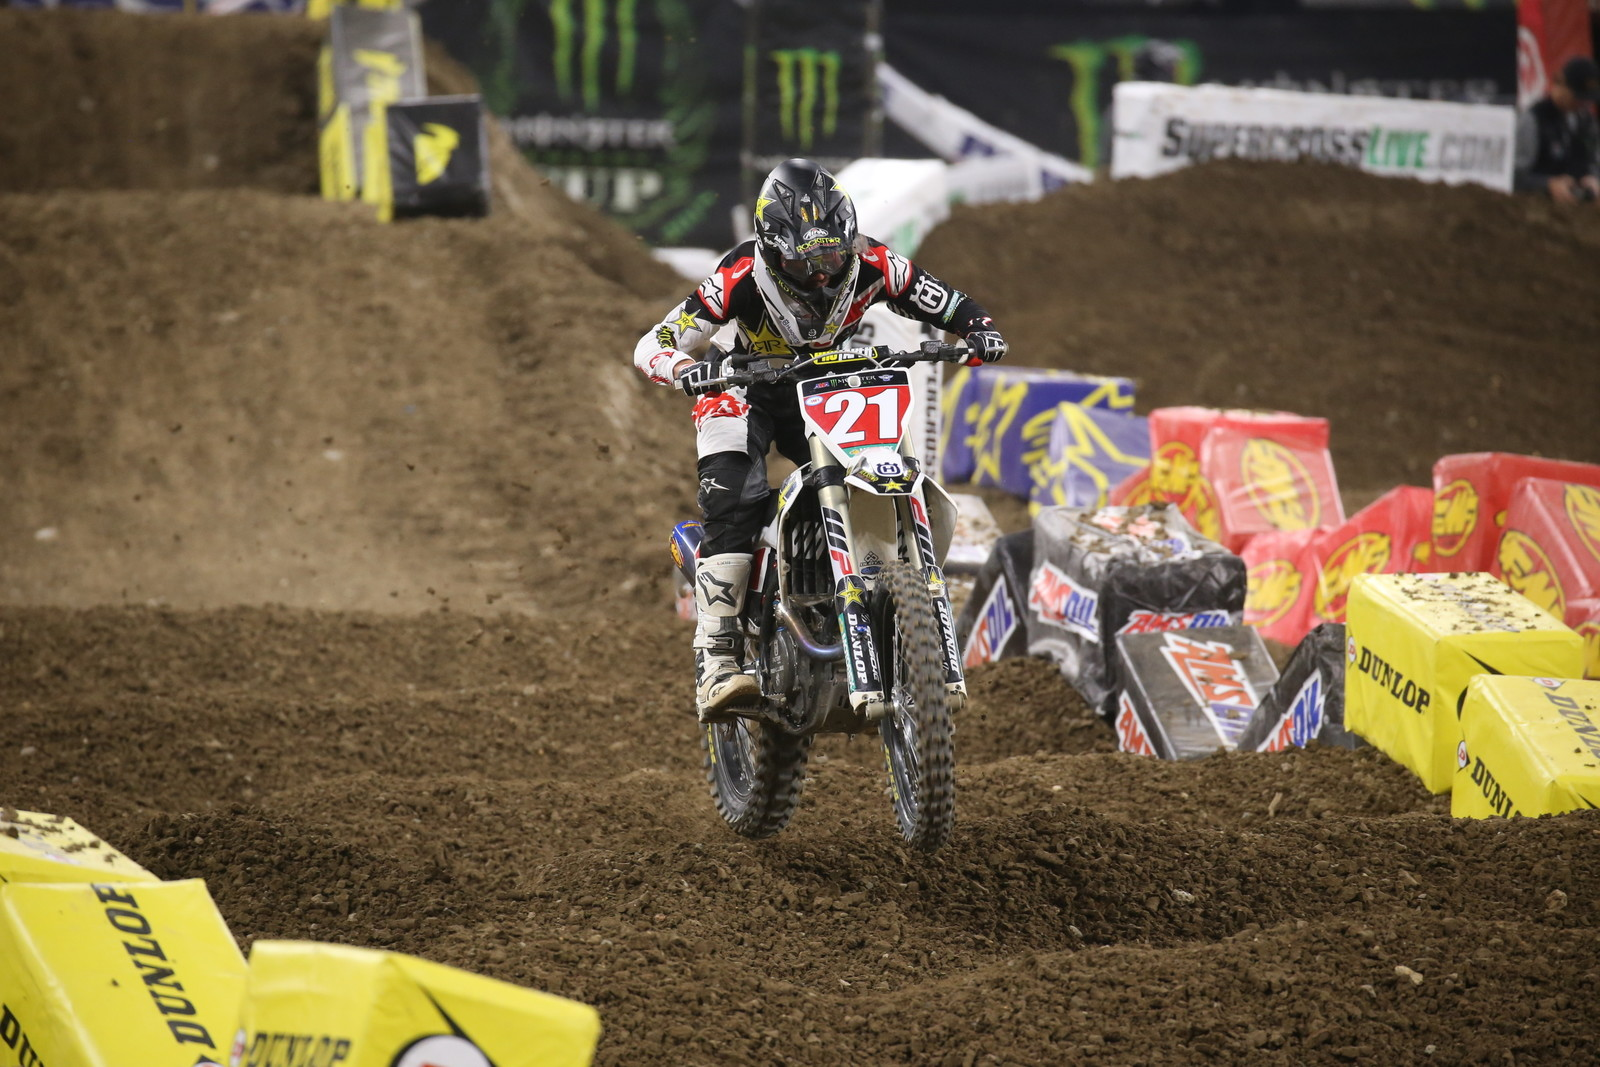 Jason Anderson won the final 450 Main Event of the night.